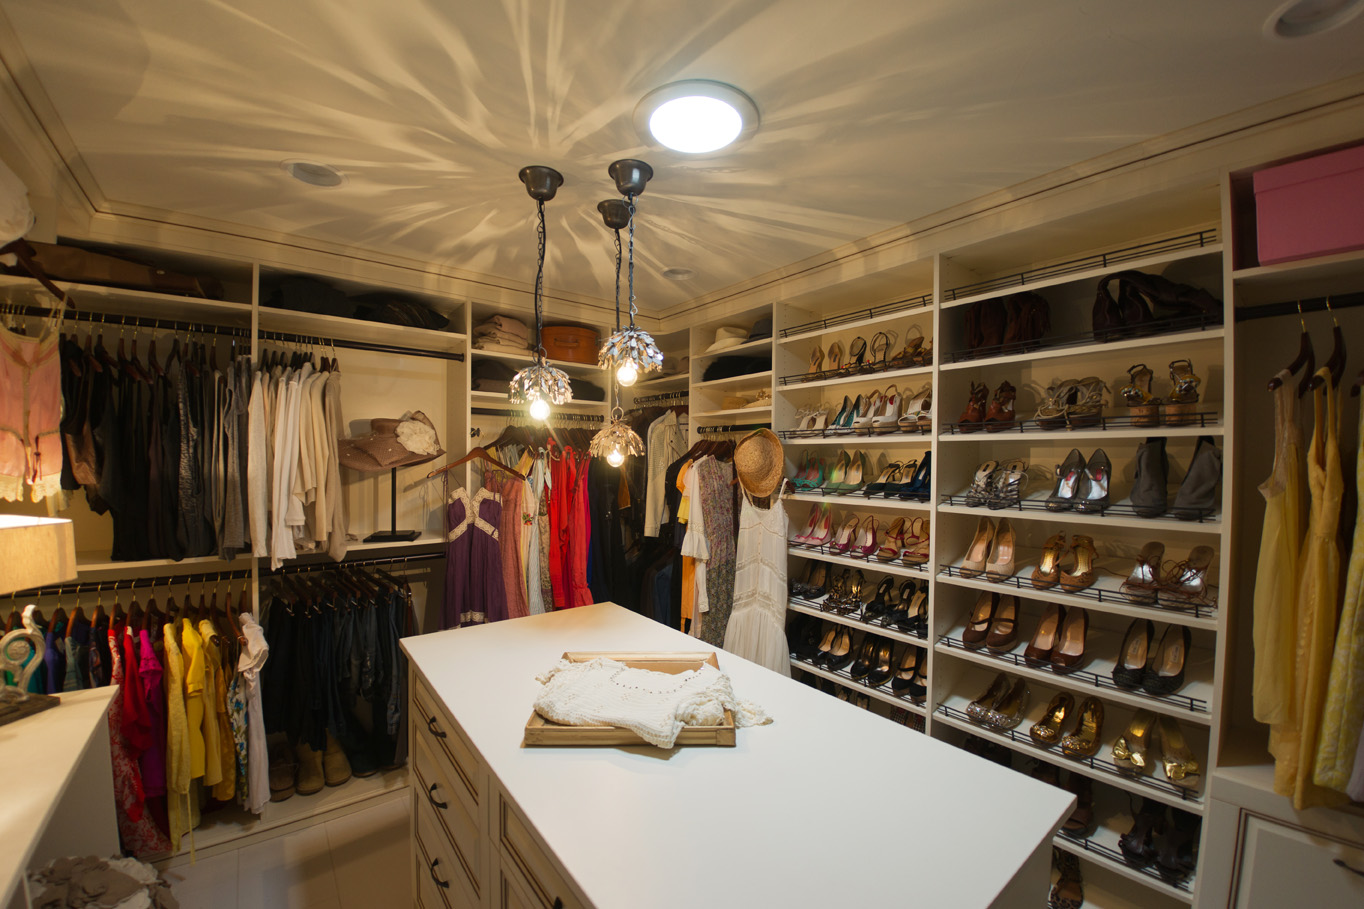 walkincloset – Walk in closet